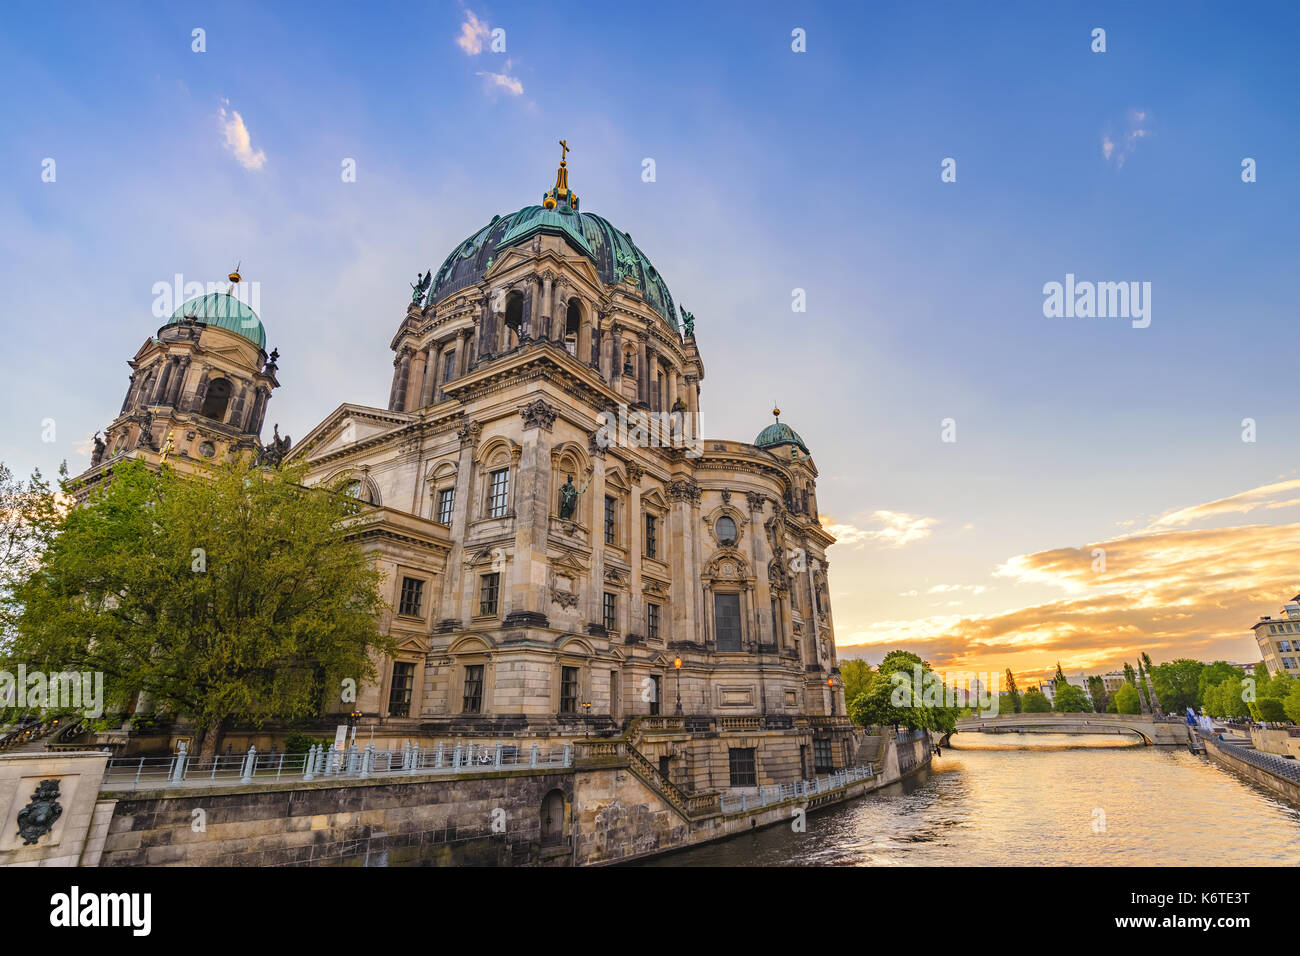 Berlin sunset city skyline at Berlin Cathedral (Berliner Dom), Berlin, Germany - Stock Image